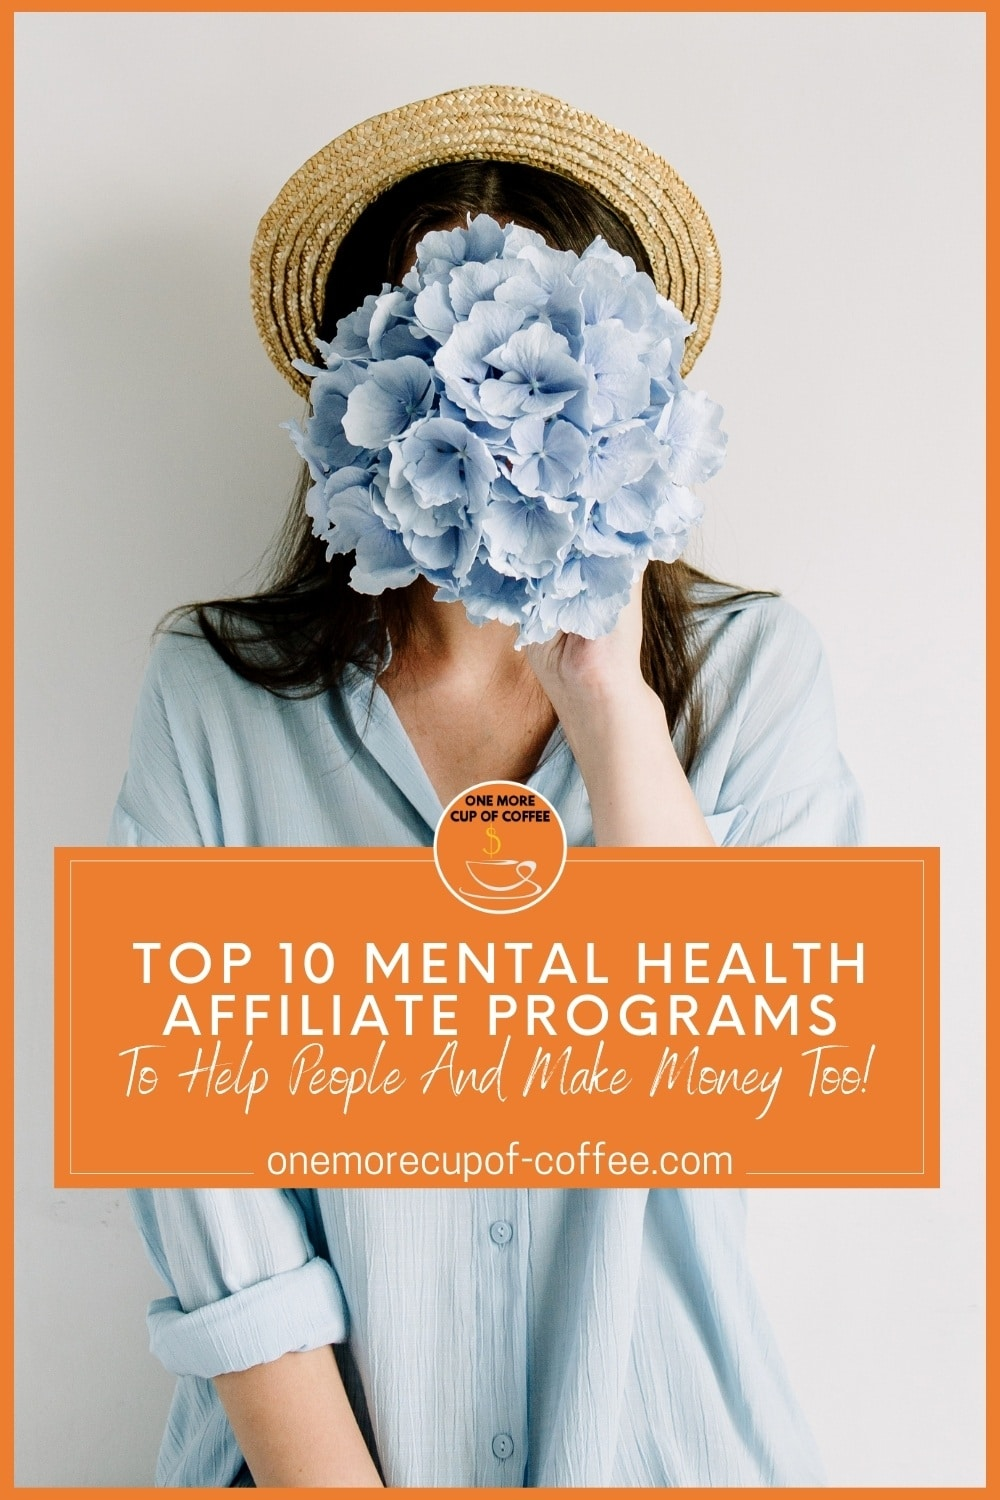 """image of woman with pale blue oversized long-sleeves shirt, wearing a native brown hat, holding a bunch of blue flowers to her face; with text overlay in orange banner """"Top 10 Mental Health Affiliate Programs To Help People And Make Money Too"""""""